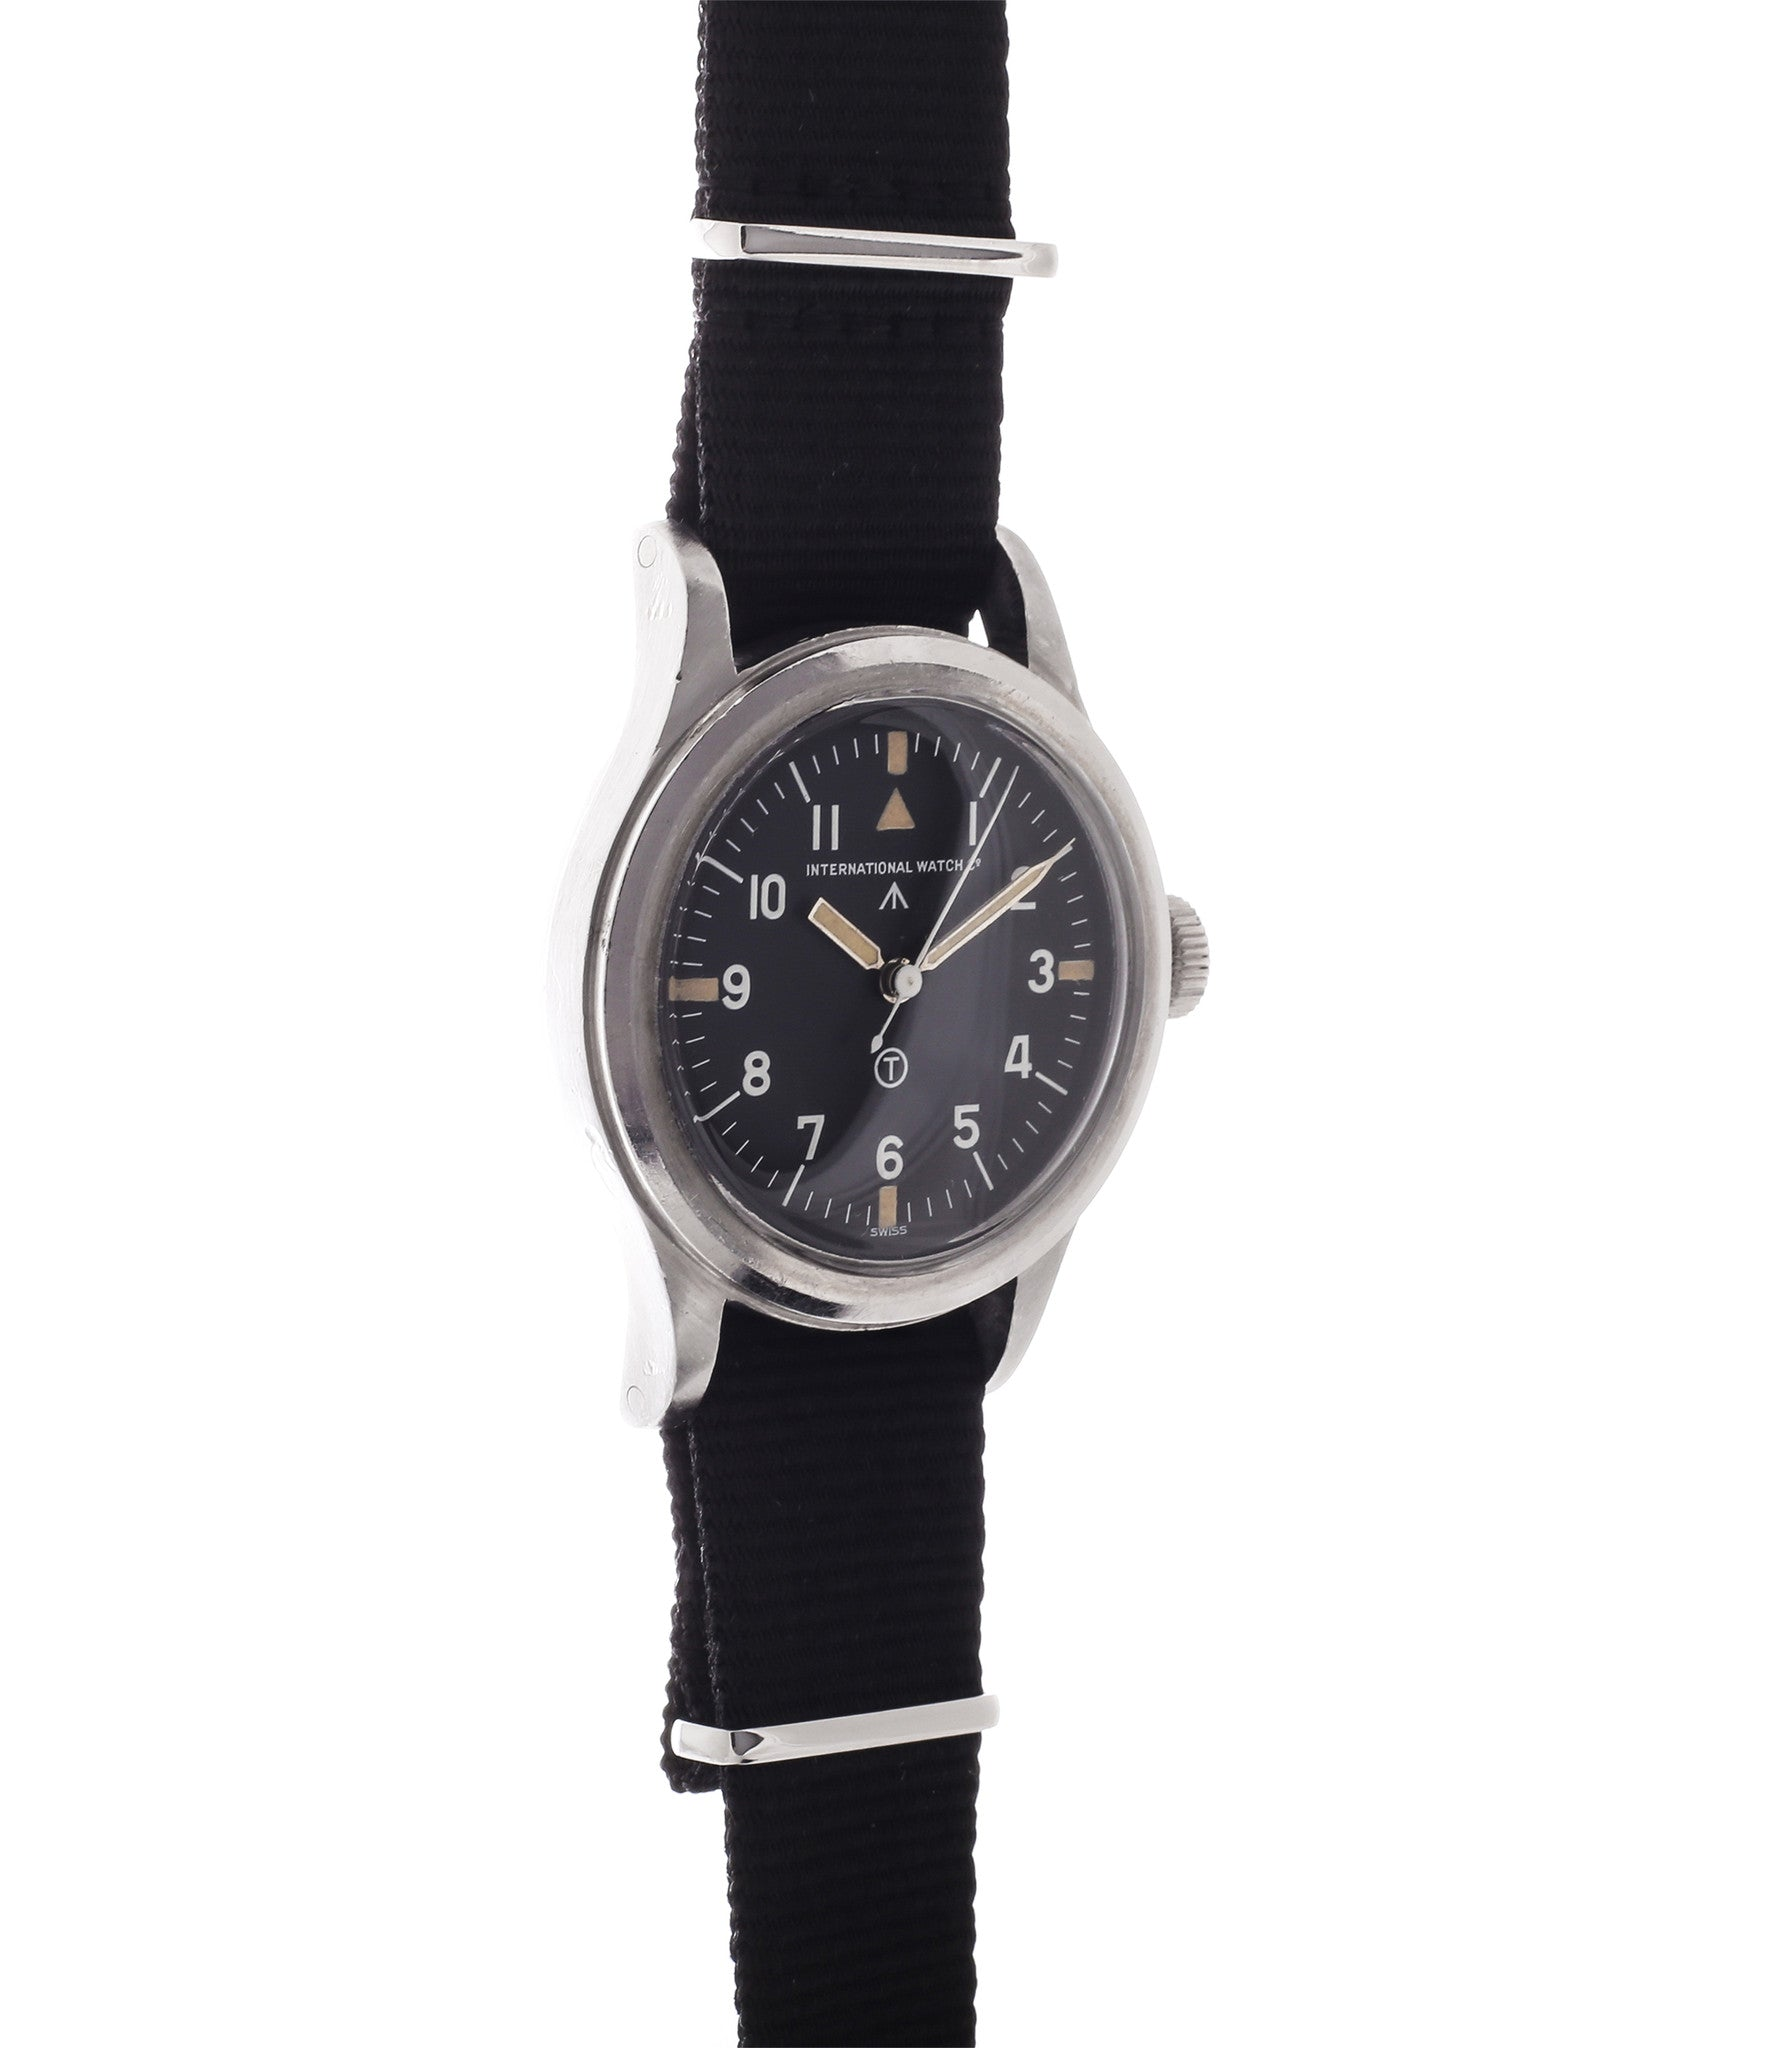 buy vintage IWC Mark 11 6B/346 British RAF military watch rare hooked 7 unrestored tritium dial for sale online WATCH XCHANGE London with authenticity guaranteed